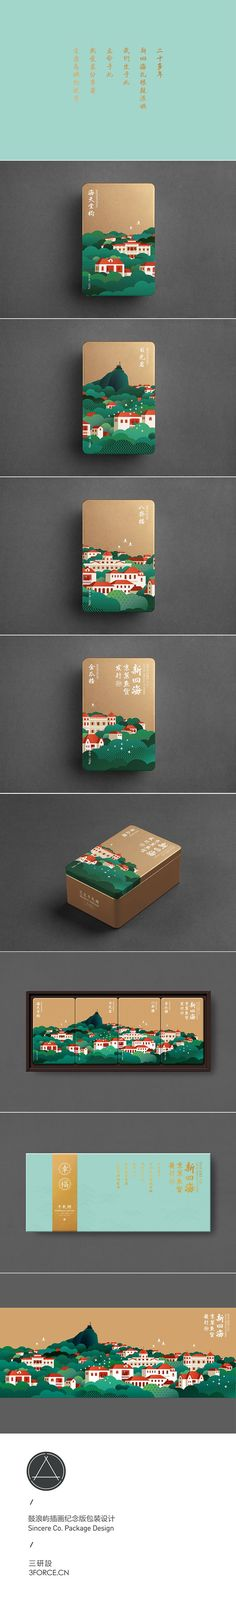 Sincere Co. Nougat Packaging / 新四海牛軋糖包裝設計 on Behance Stop by my Etsy Shop: www.etsy.com/shop/TeoldDesign